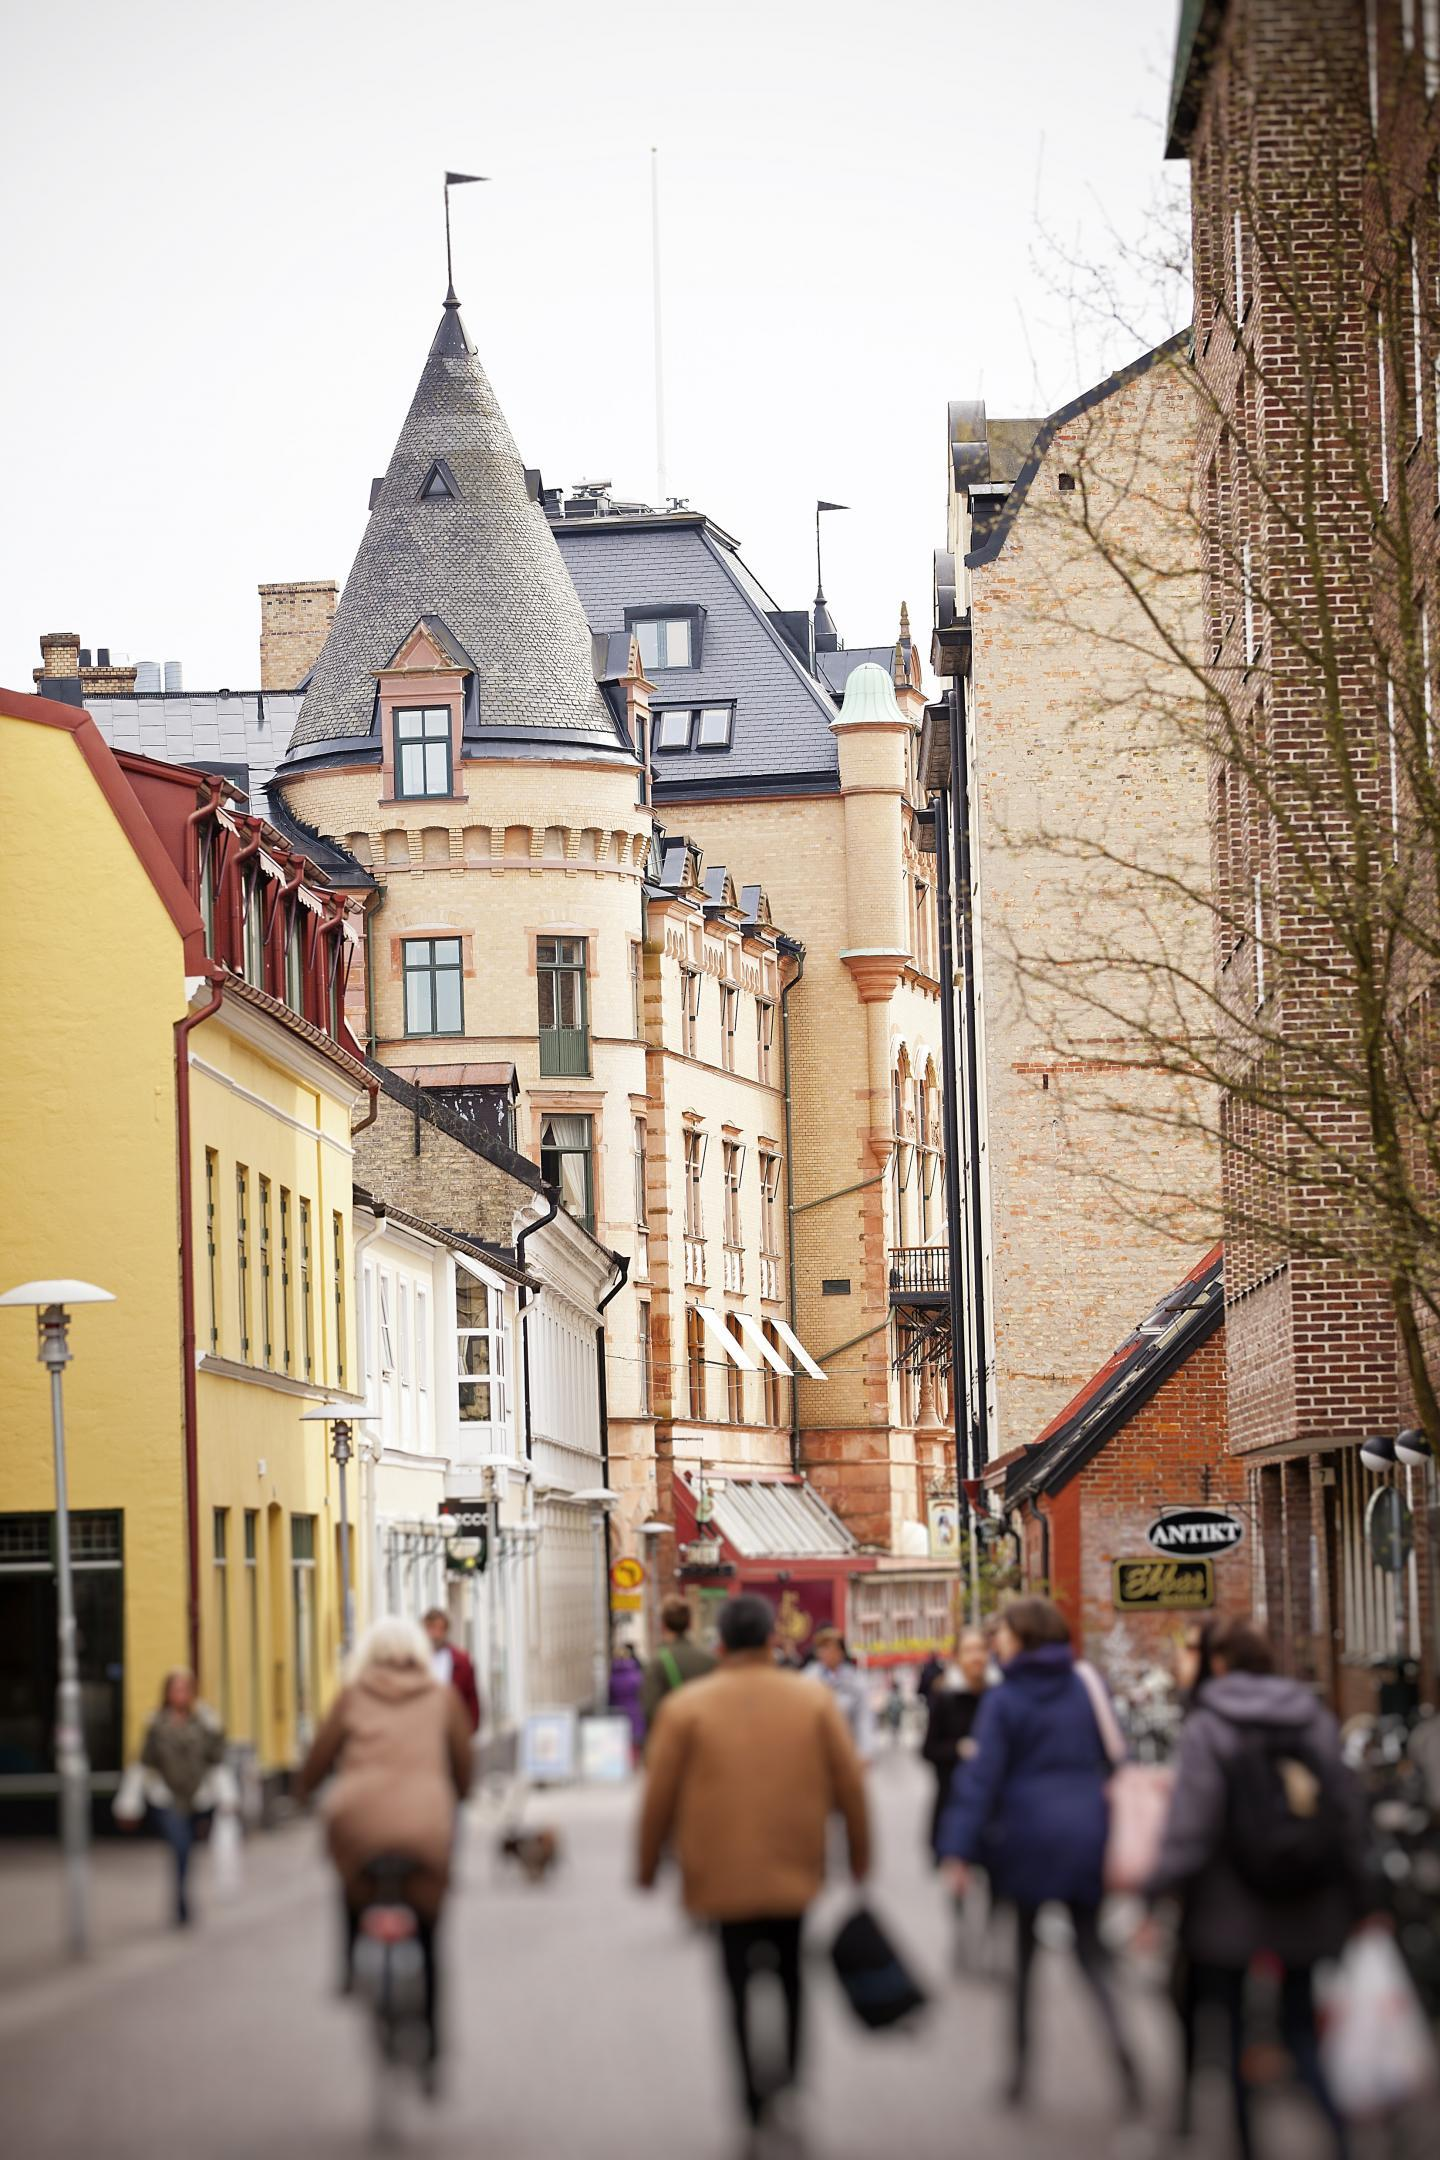 One of the quaint shopping streets in Lund